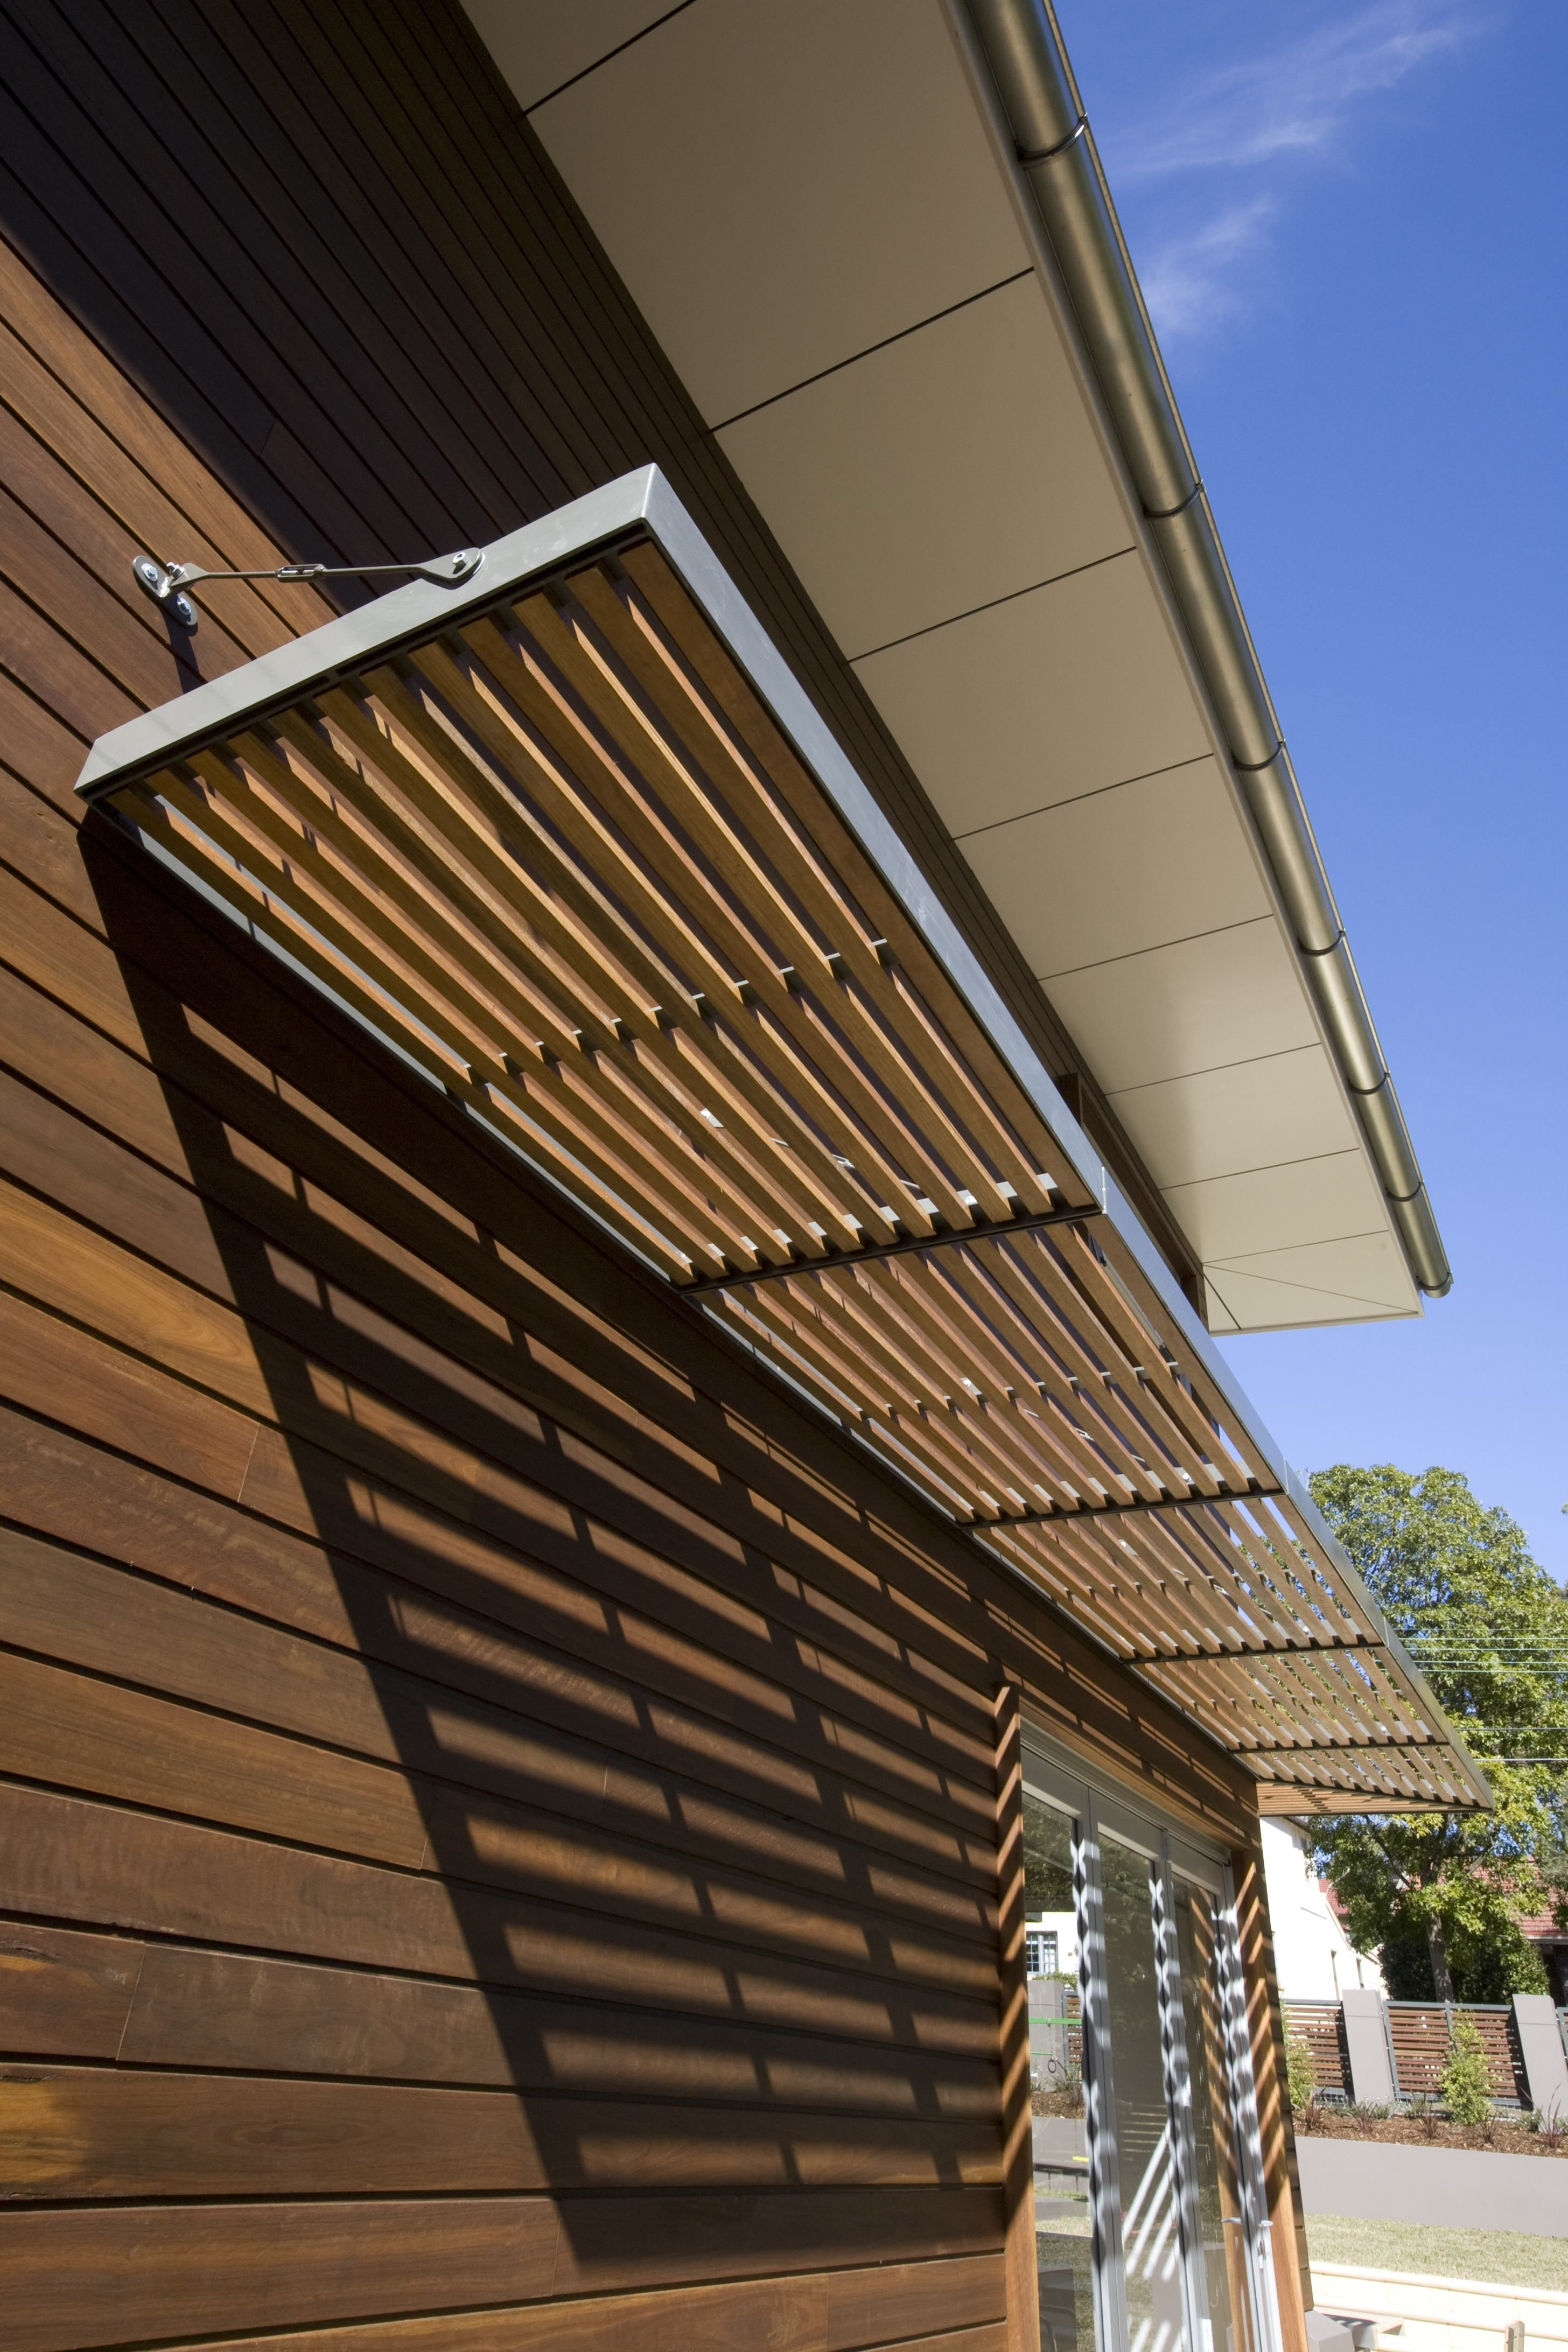 Awning House Awnings Shade Structure Metal Awning